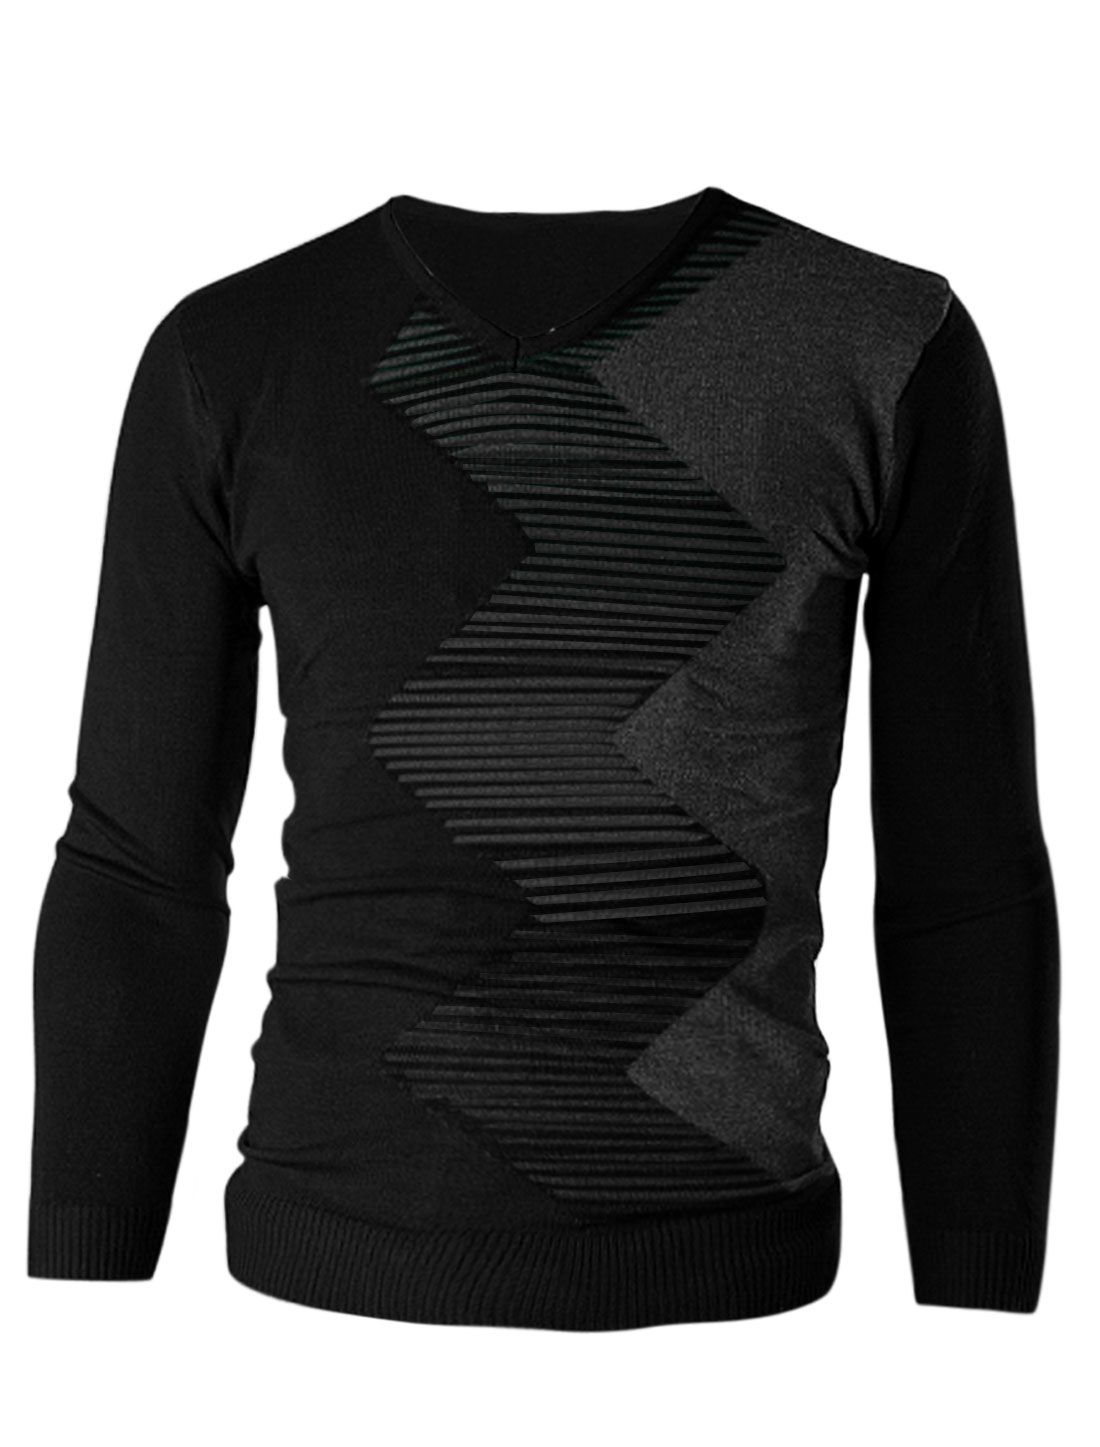 Men V Neck Stripes Zig-Zag Pattern Contrast Color Slim Knit Shirt Black M